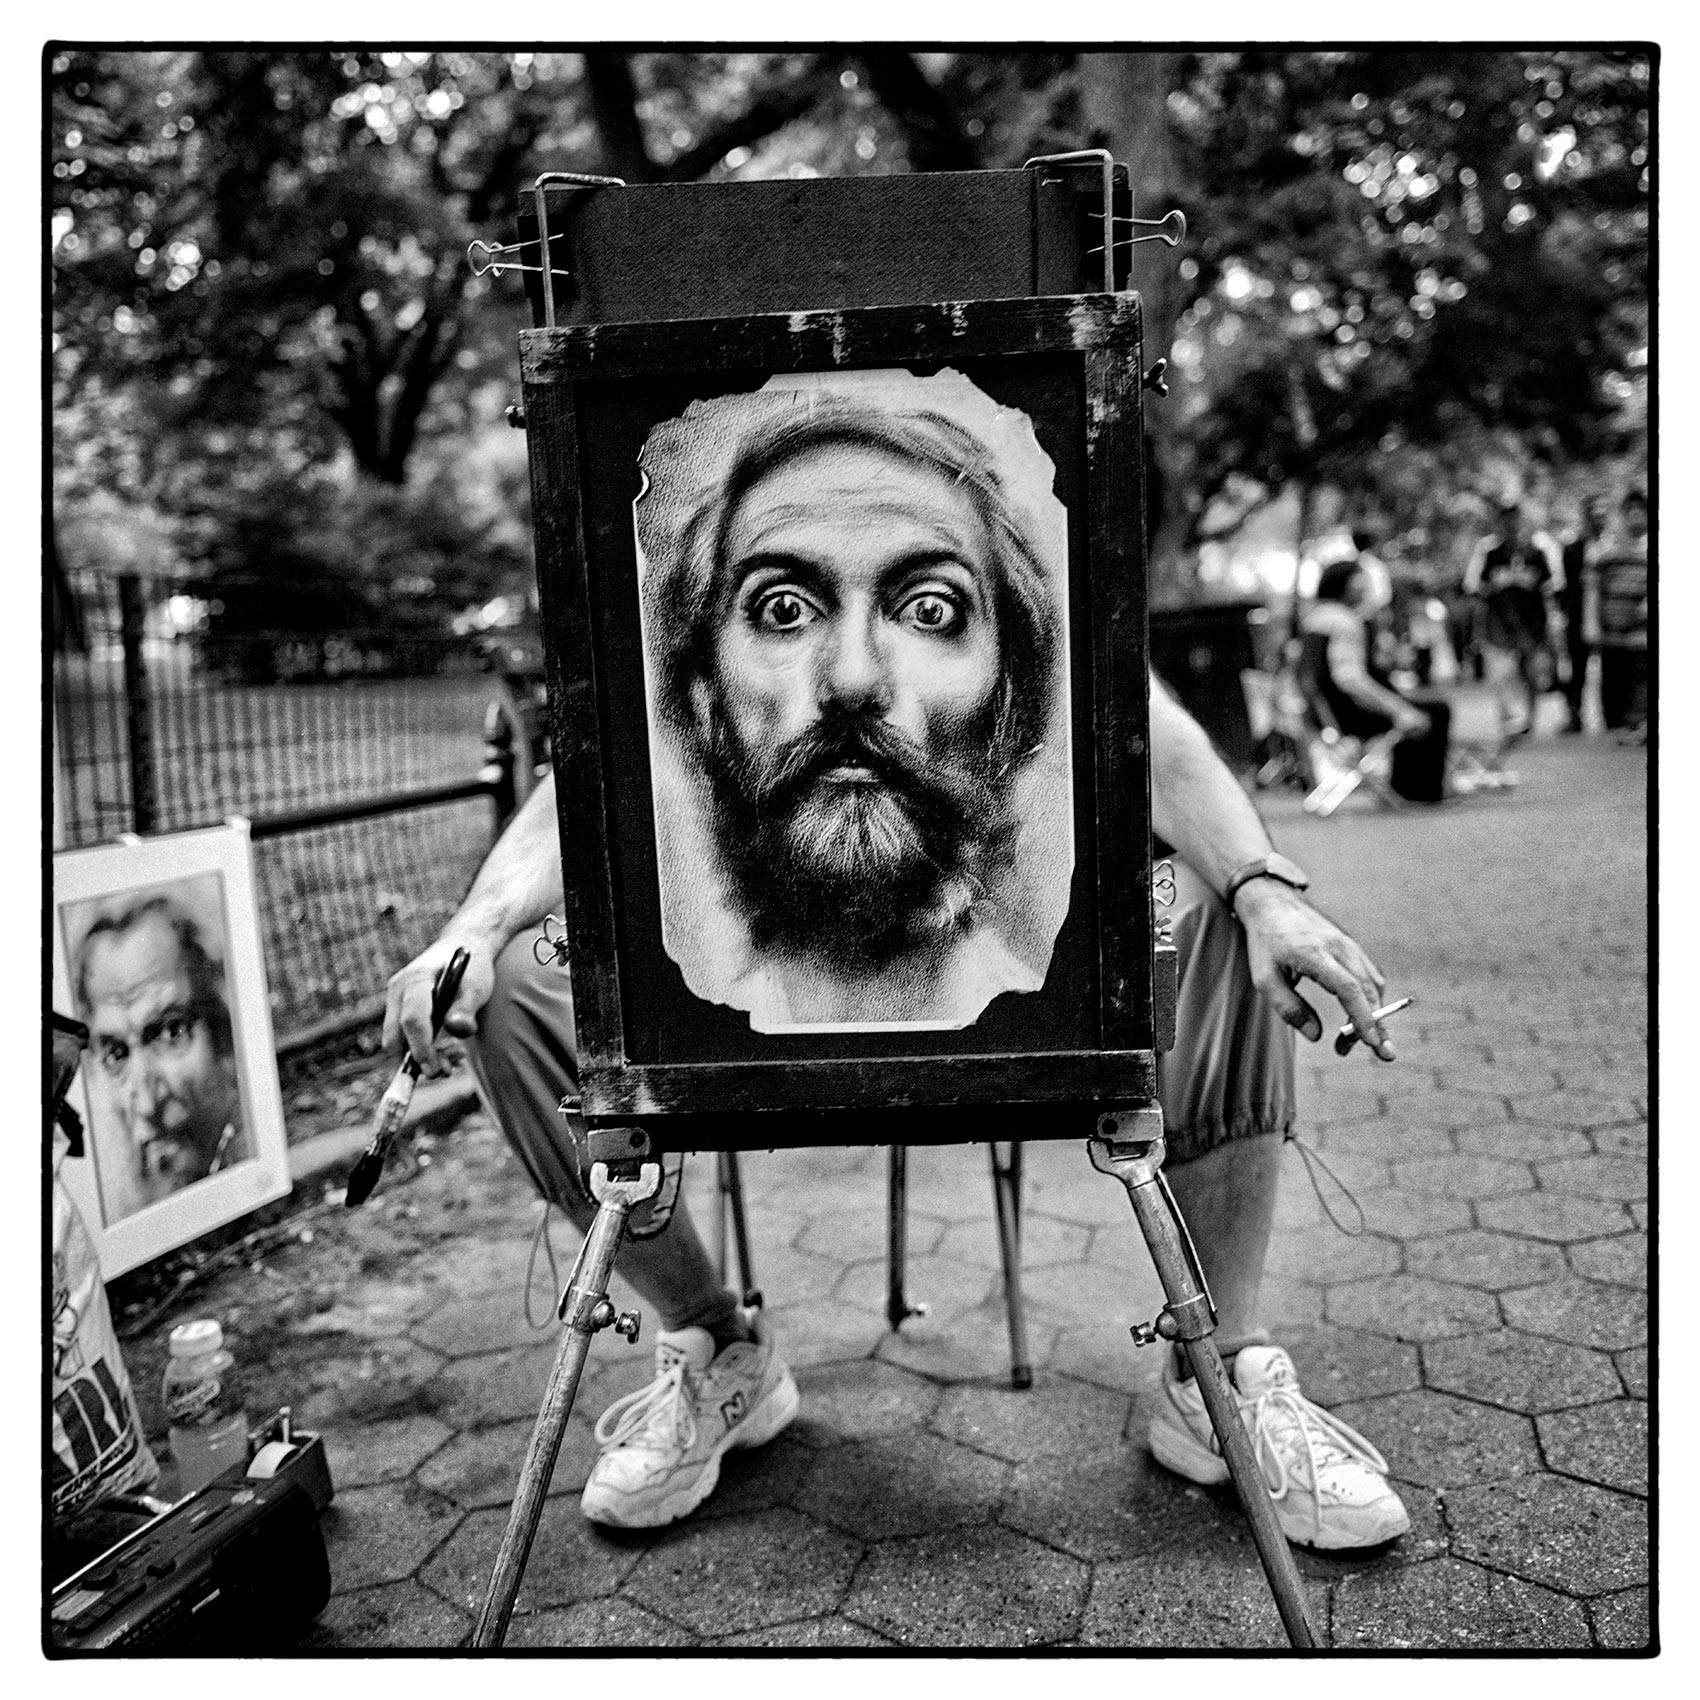 an-artist-in-central-park-in-new-york-sits-behind-a-painting-of-a-face